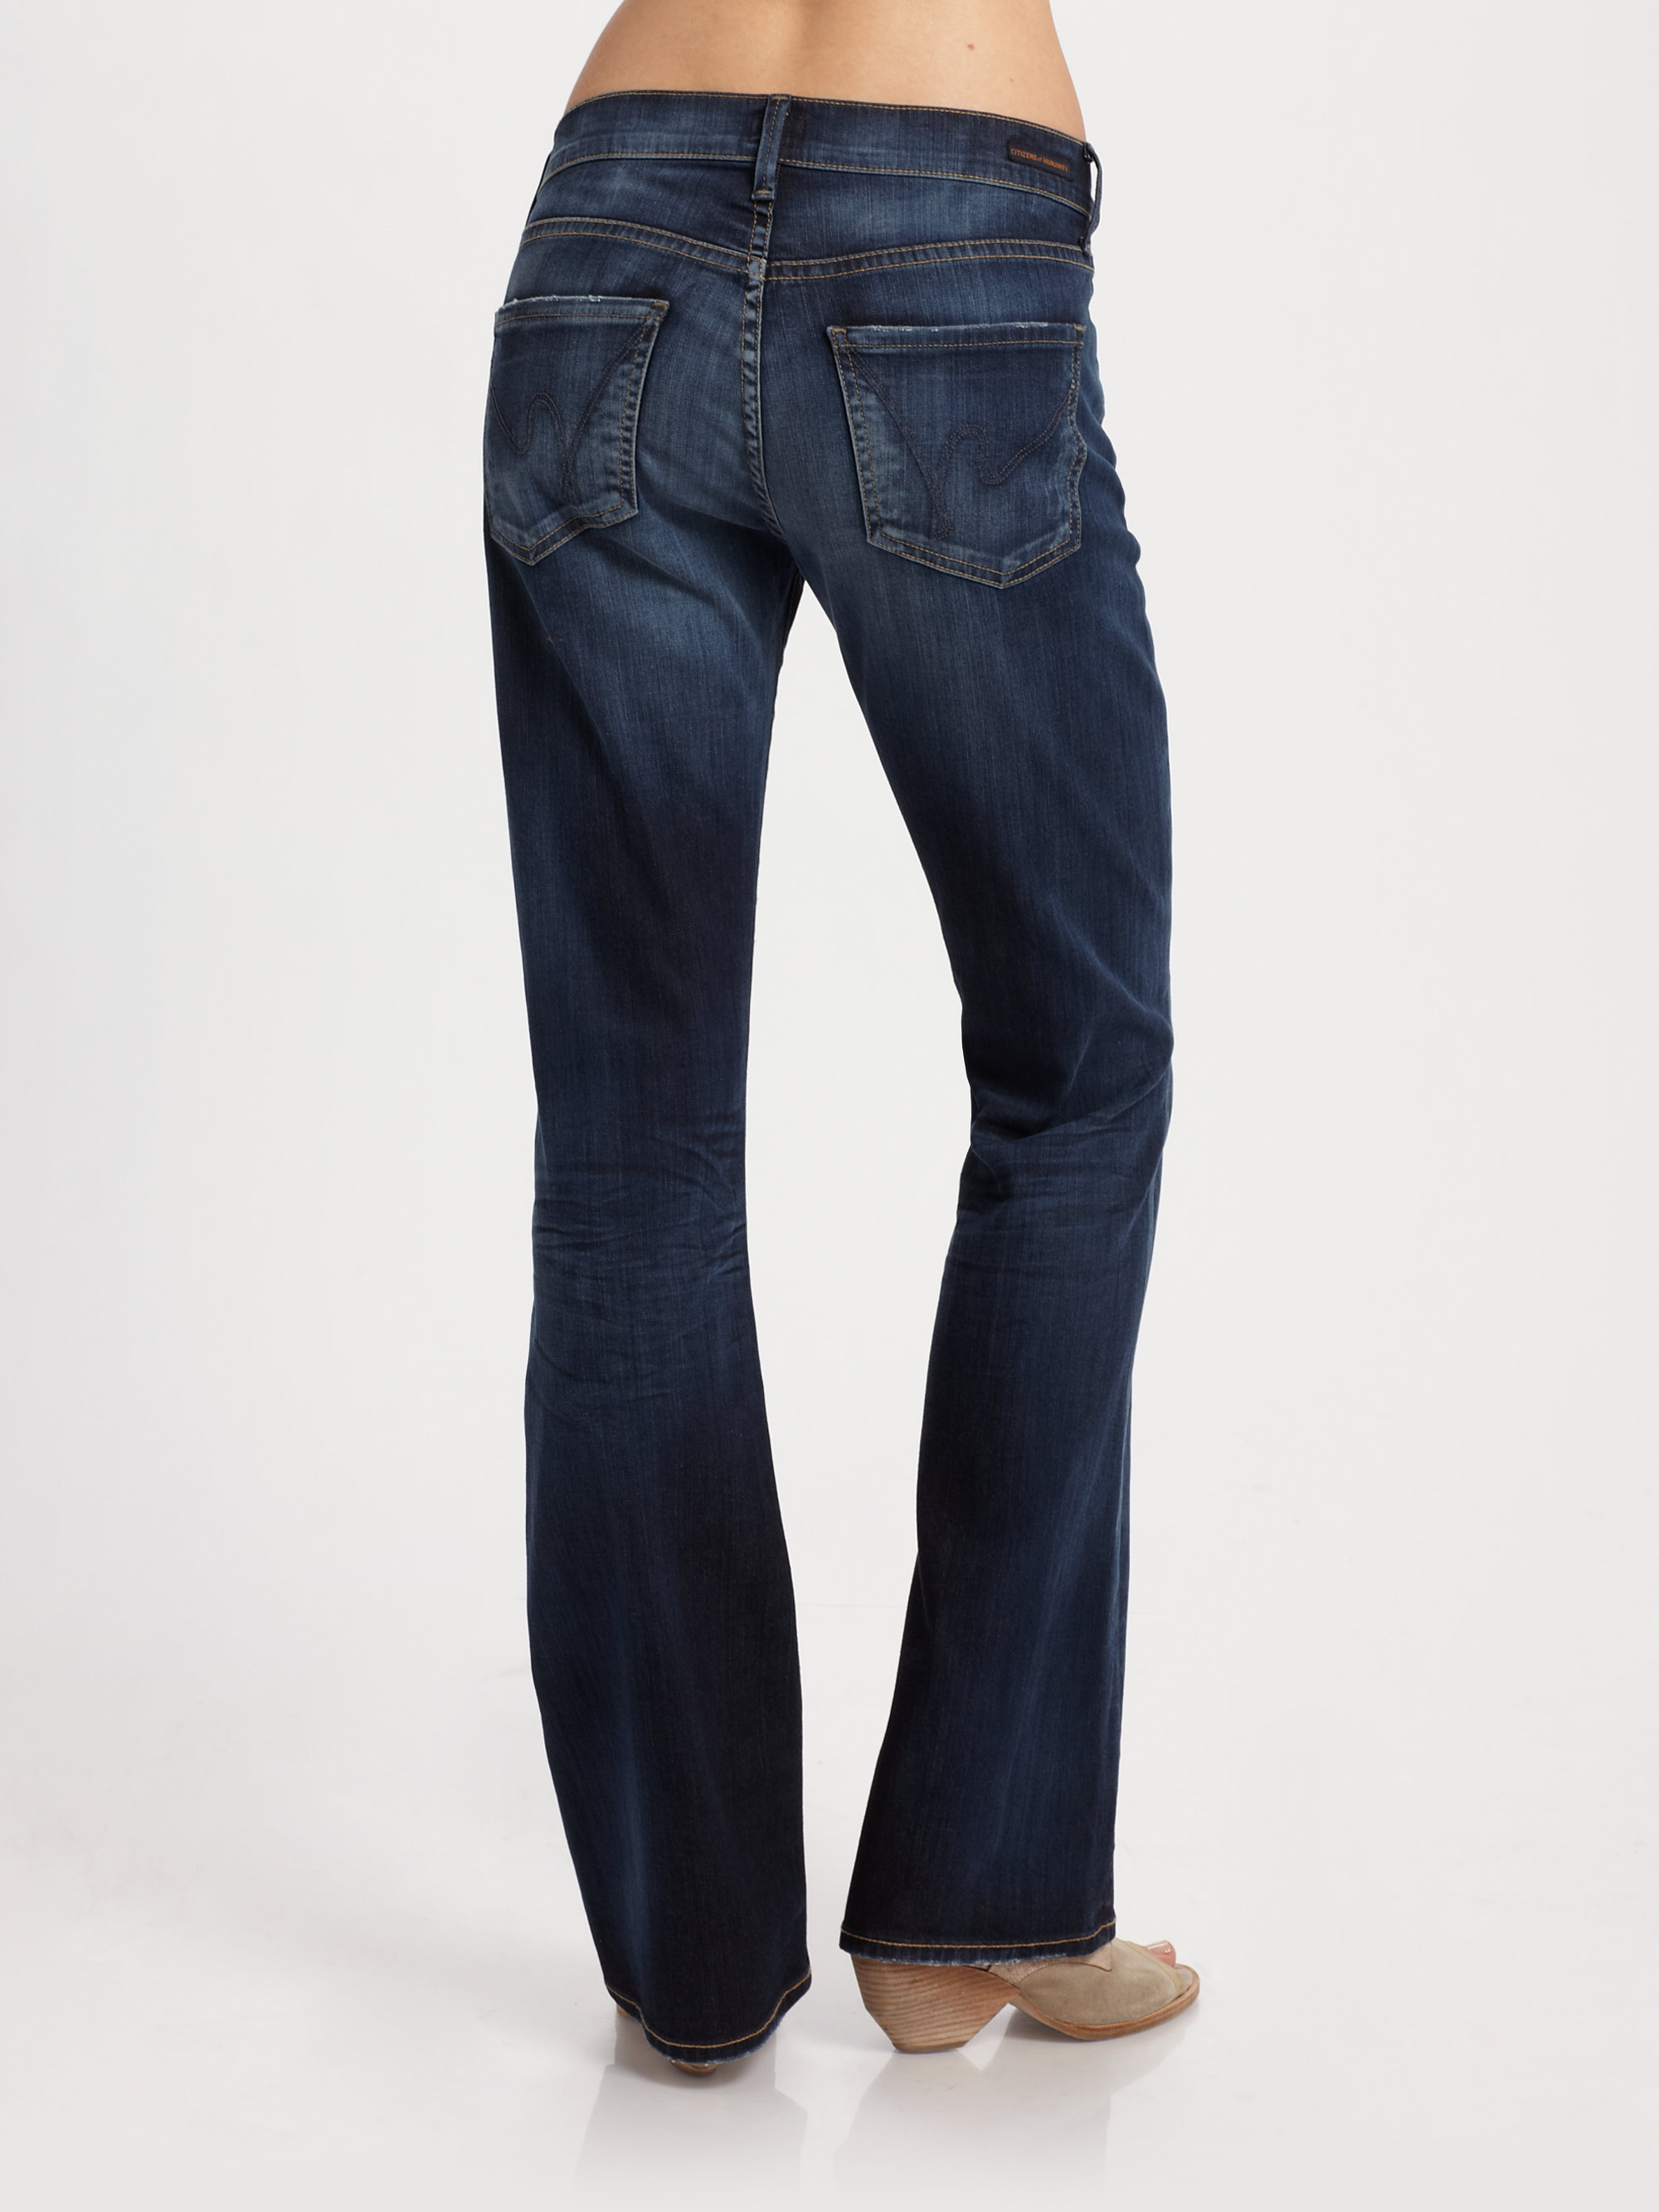 Citizens of humanity Dita Petite Bootcut Jeans in Blue | Lyst